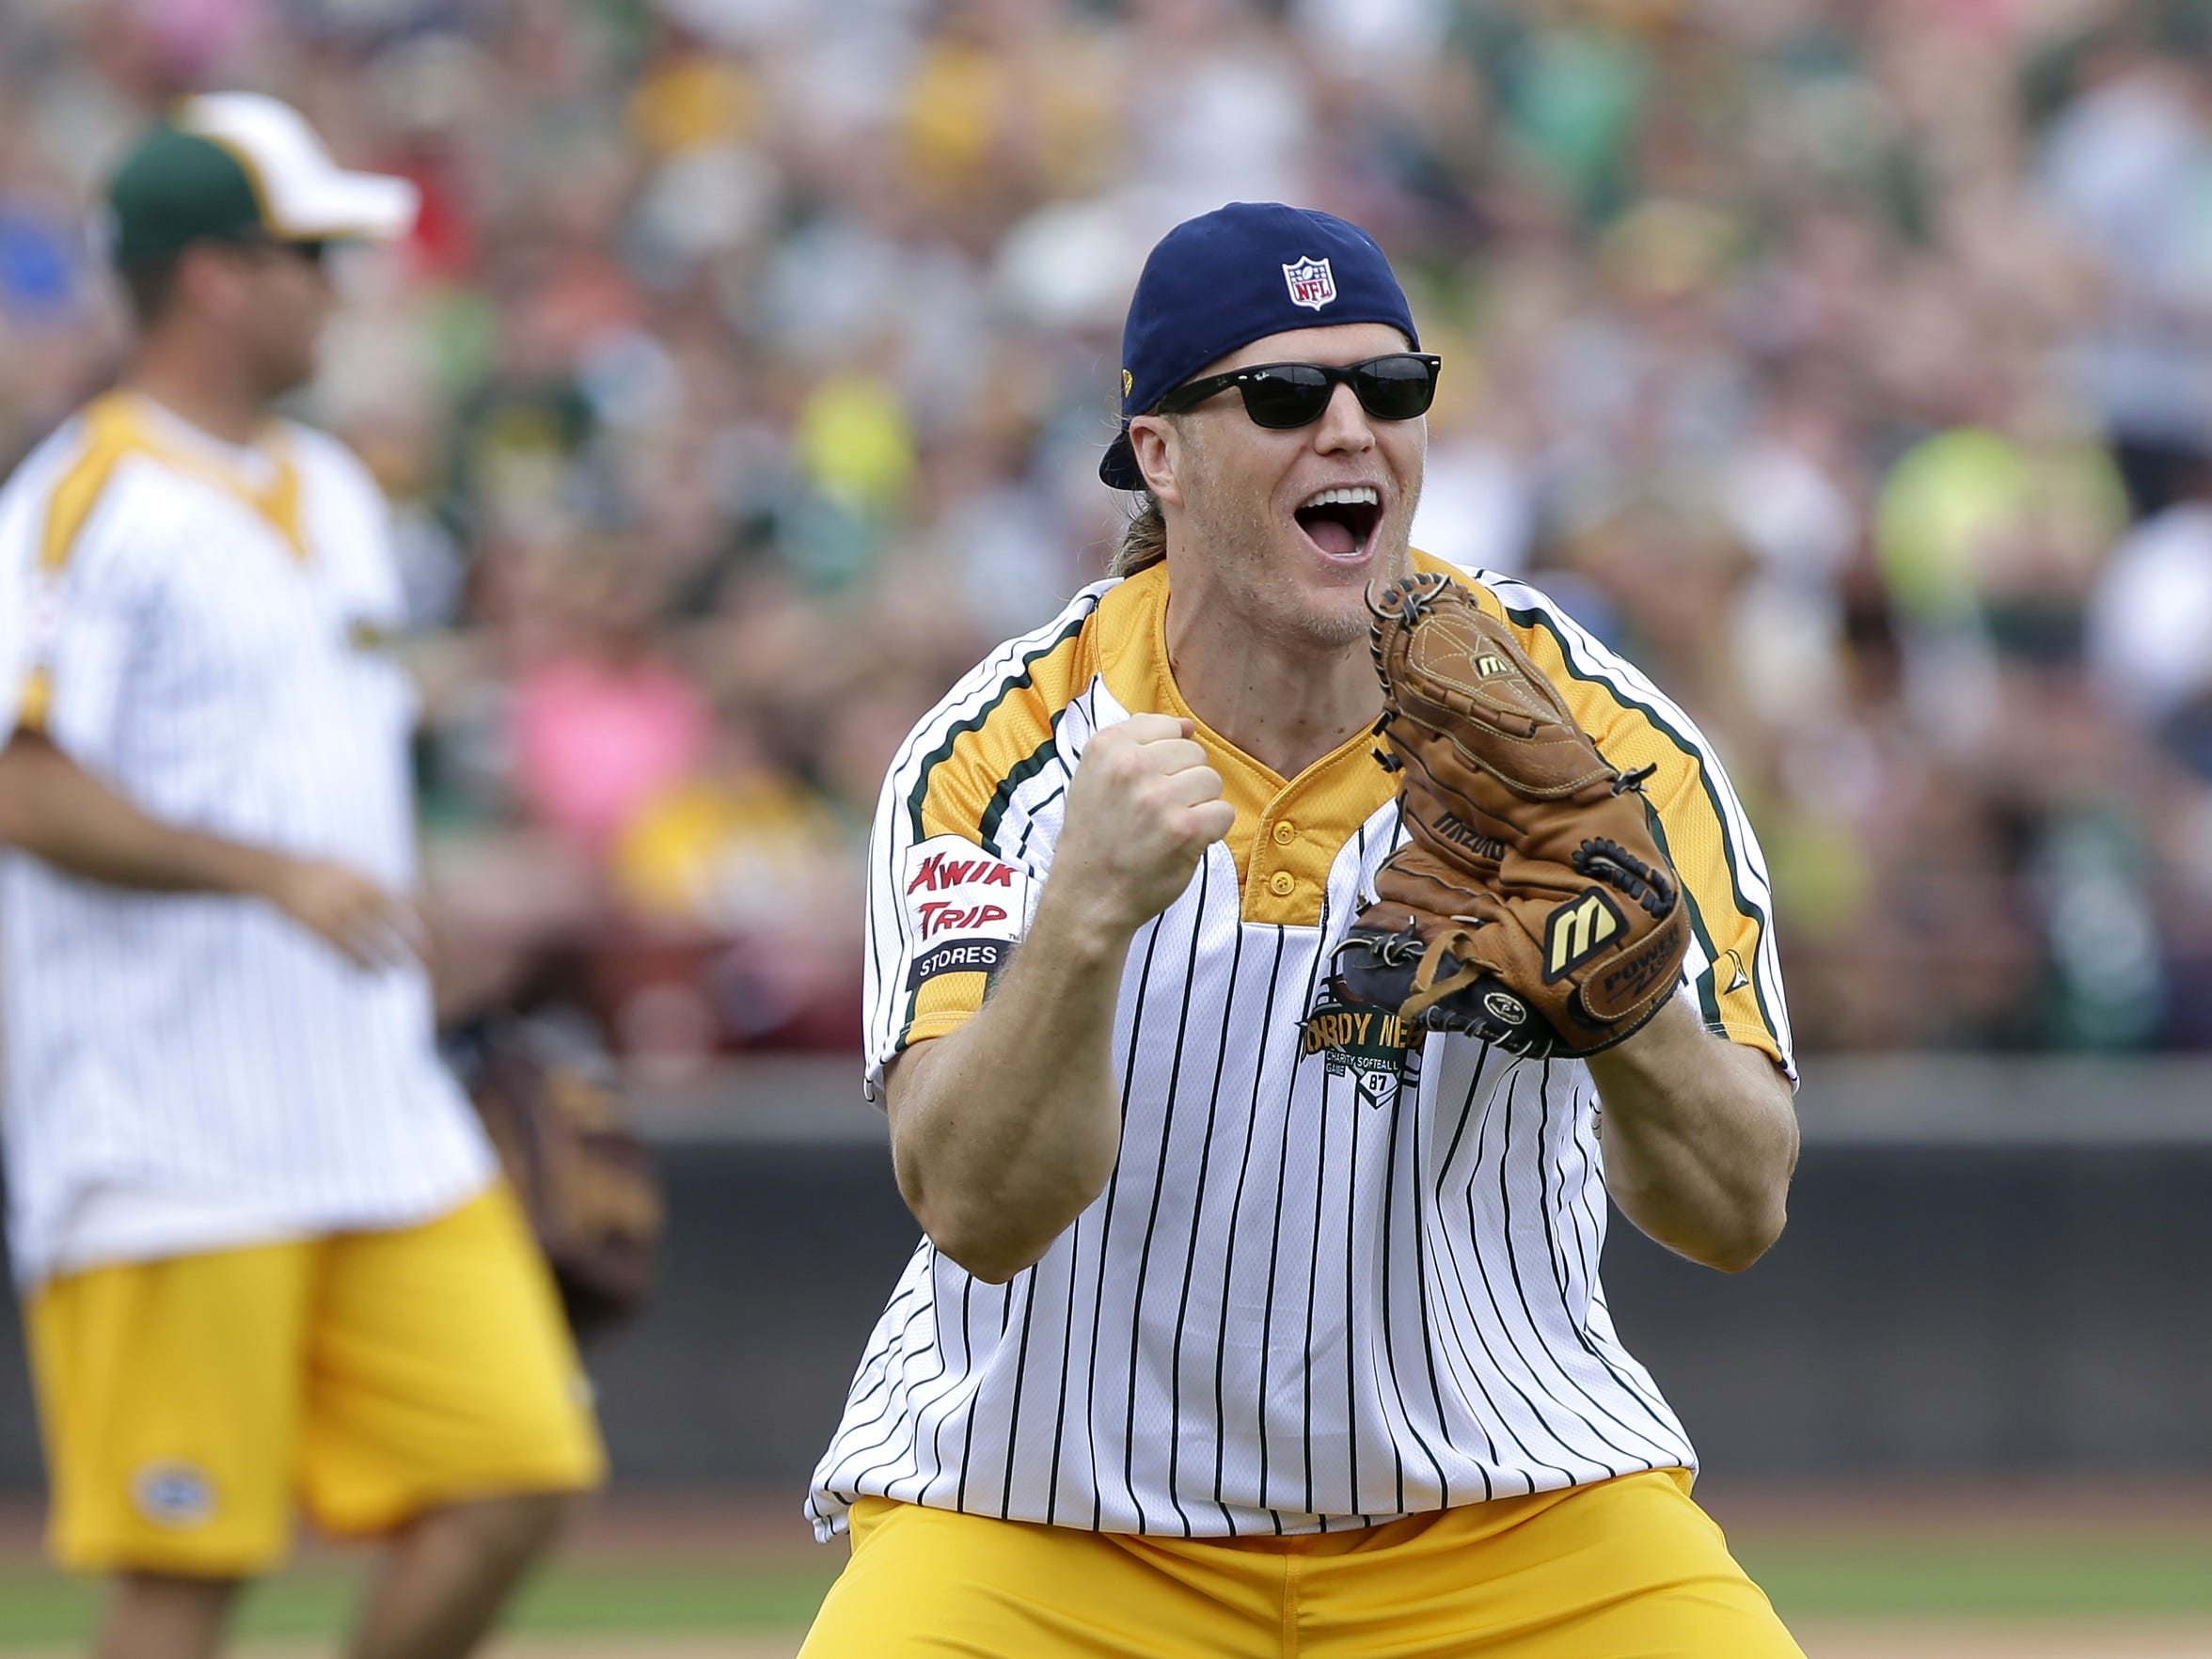 Clay Matthews was among the Packers players taking part in the Jordy Nelson Charity Softball Game in 2015.